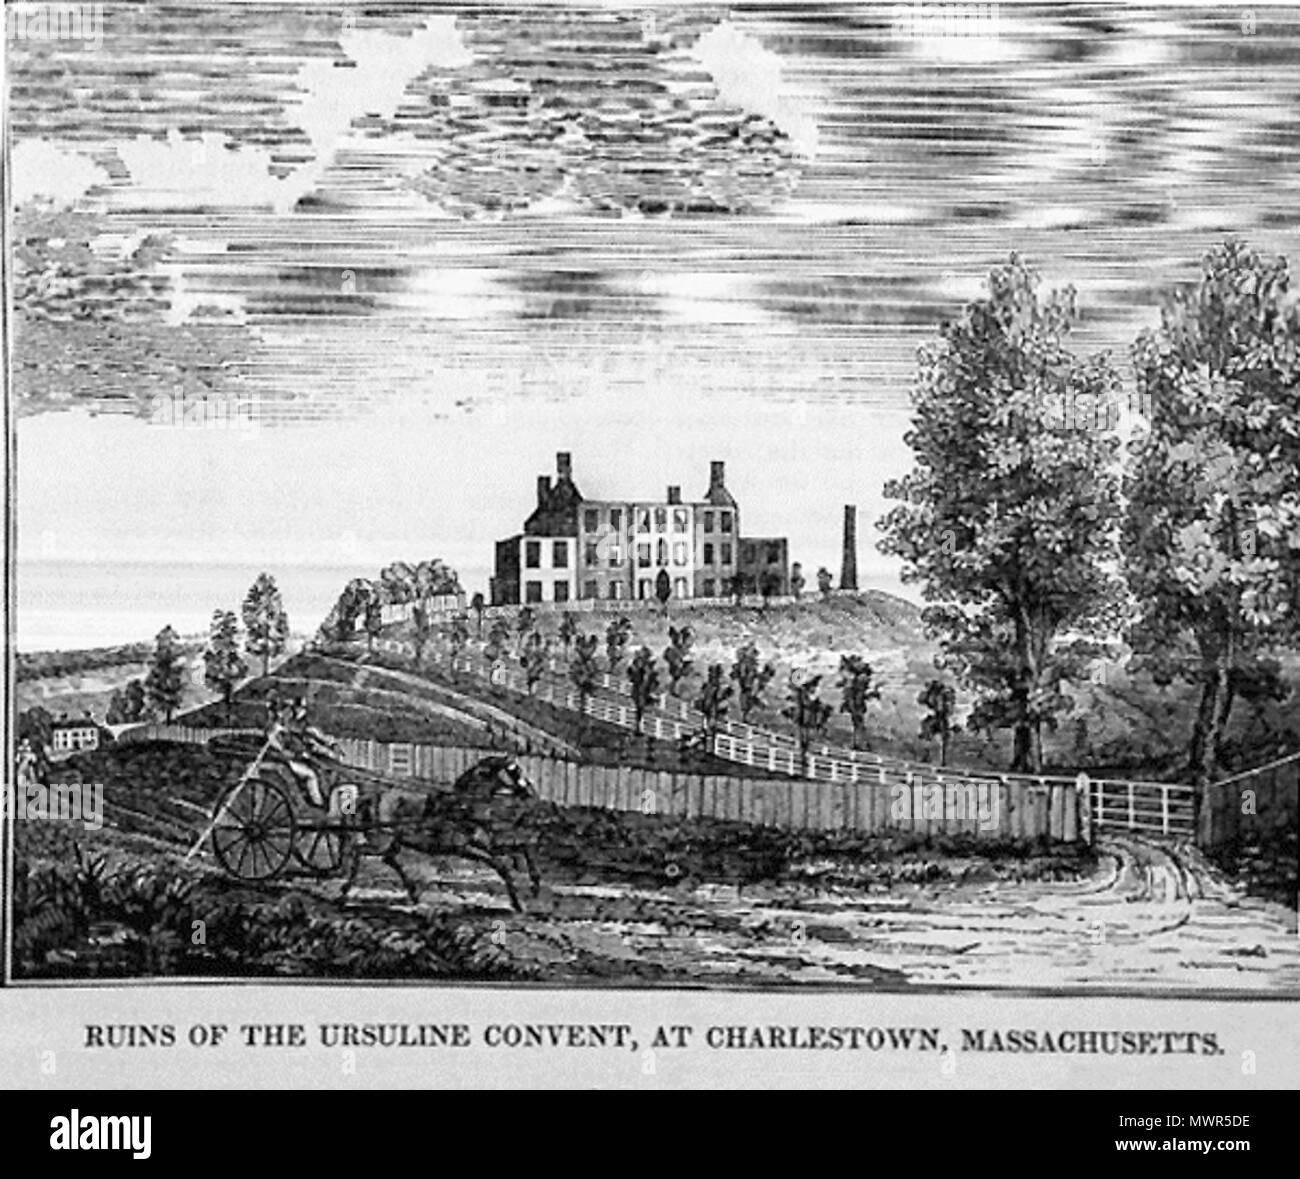 . English: 'Ruins of the Ursuline Convent, at Charlestown Massachusetts,' (Ursuline Convent Riots of August 11 & 12, 1834) wood engraving (print), original in the collection of the Charlestown (Massachusetts) Historical Society, USA . 1834. unidentified artist, historical print 532 Ruins of Ursuline Convent 1834 Riots - Stock Image